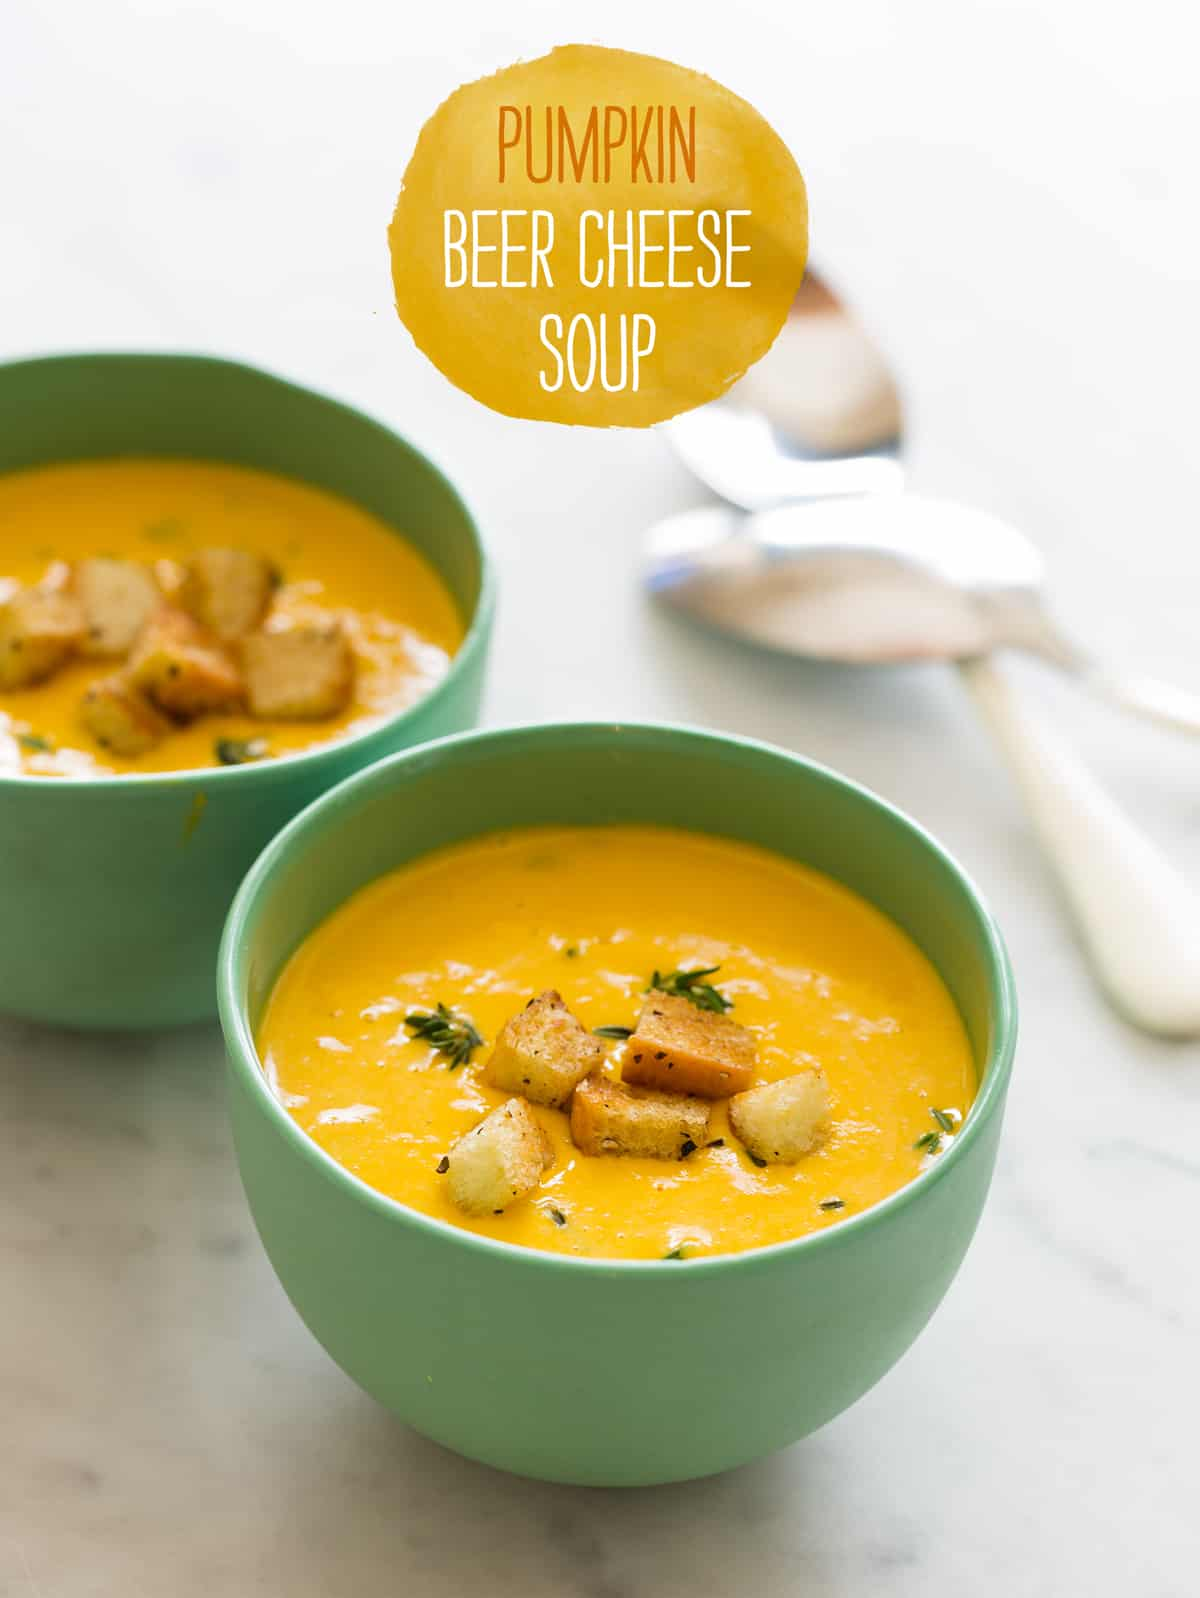 Pumpkin Beer Cheese Soup recipe | Spoon Fork Bacon